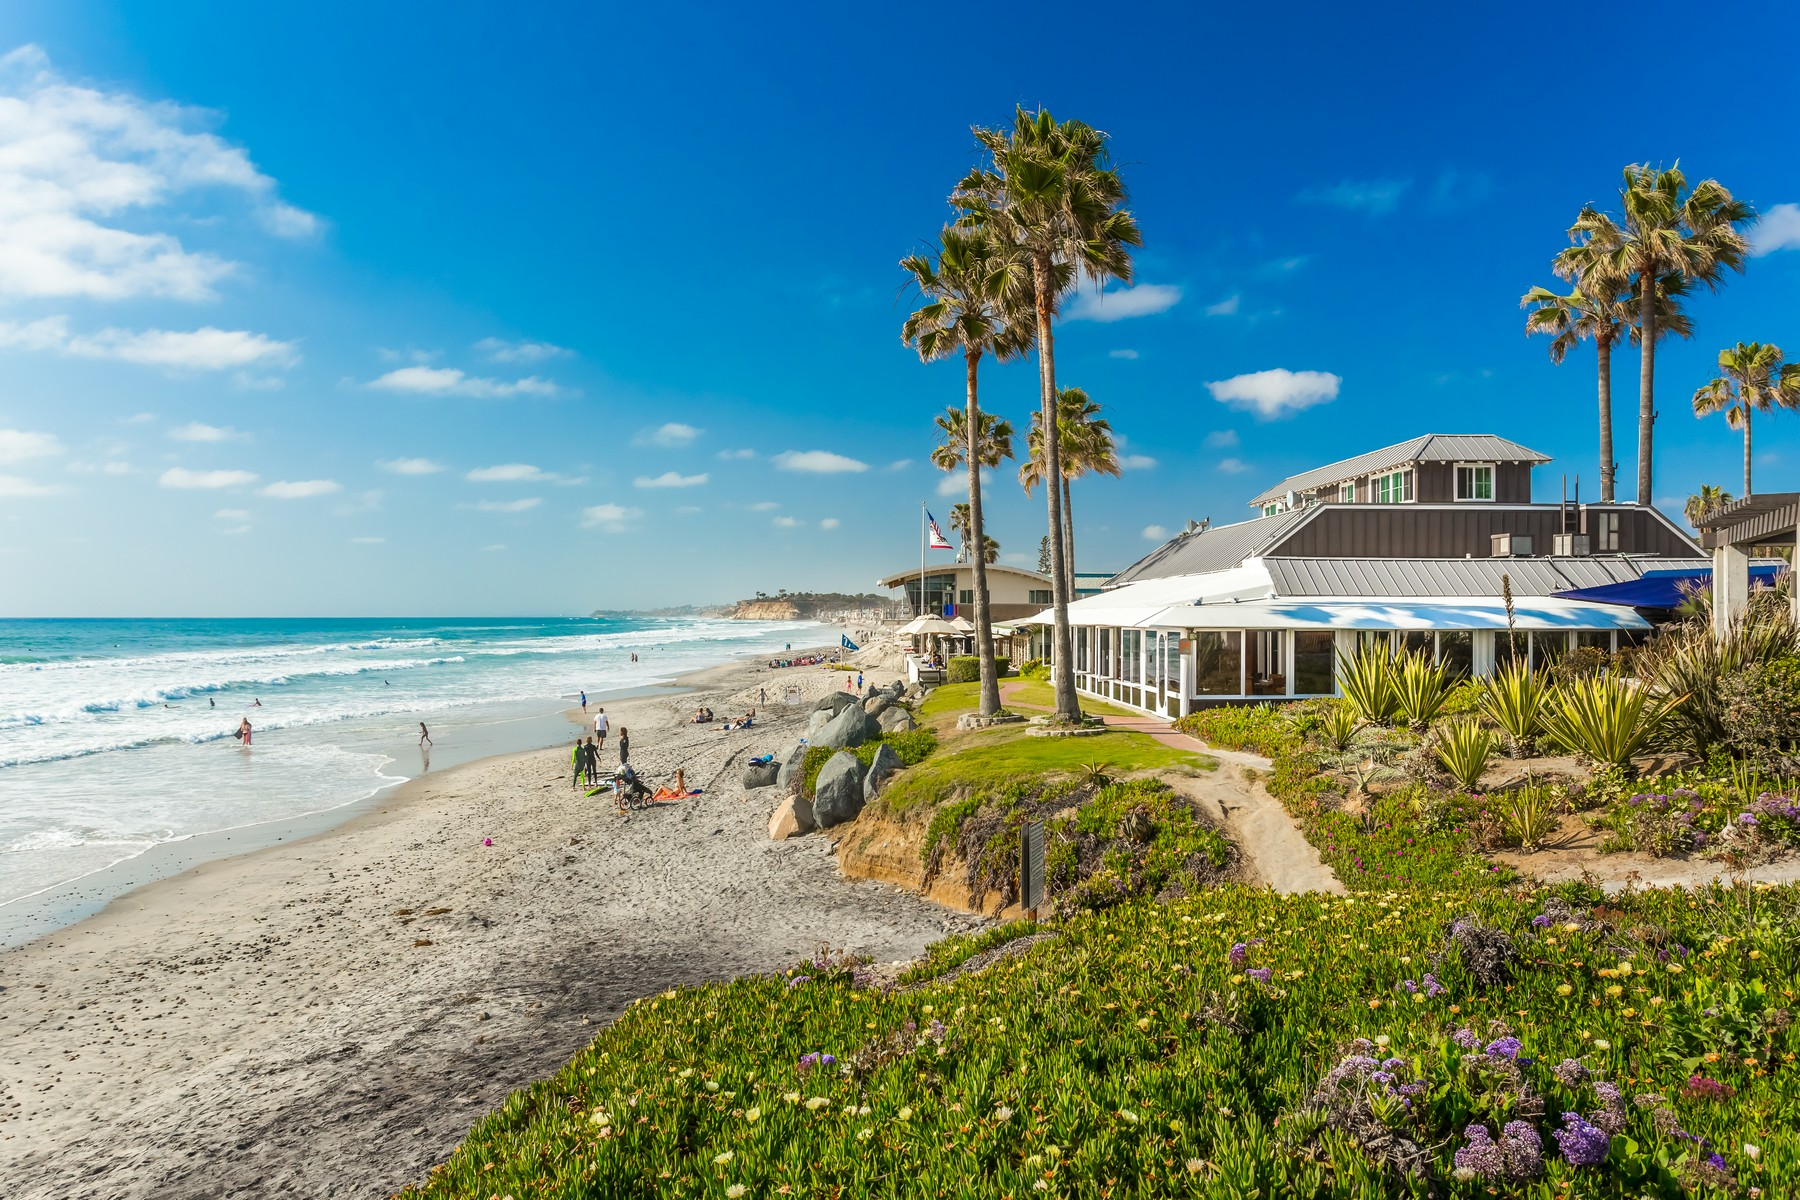 Single Family Home for Active at 1727-1729 Coast Blvd 1727-1729 Coast Blvd Del Mar, California 92014 United States